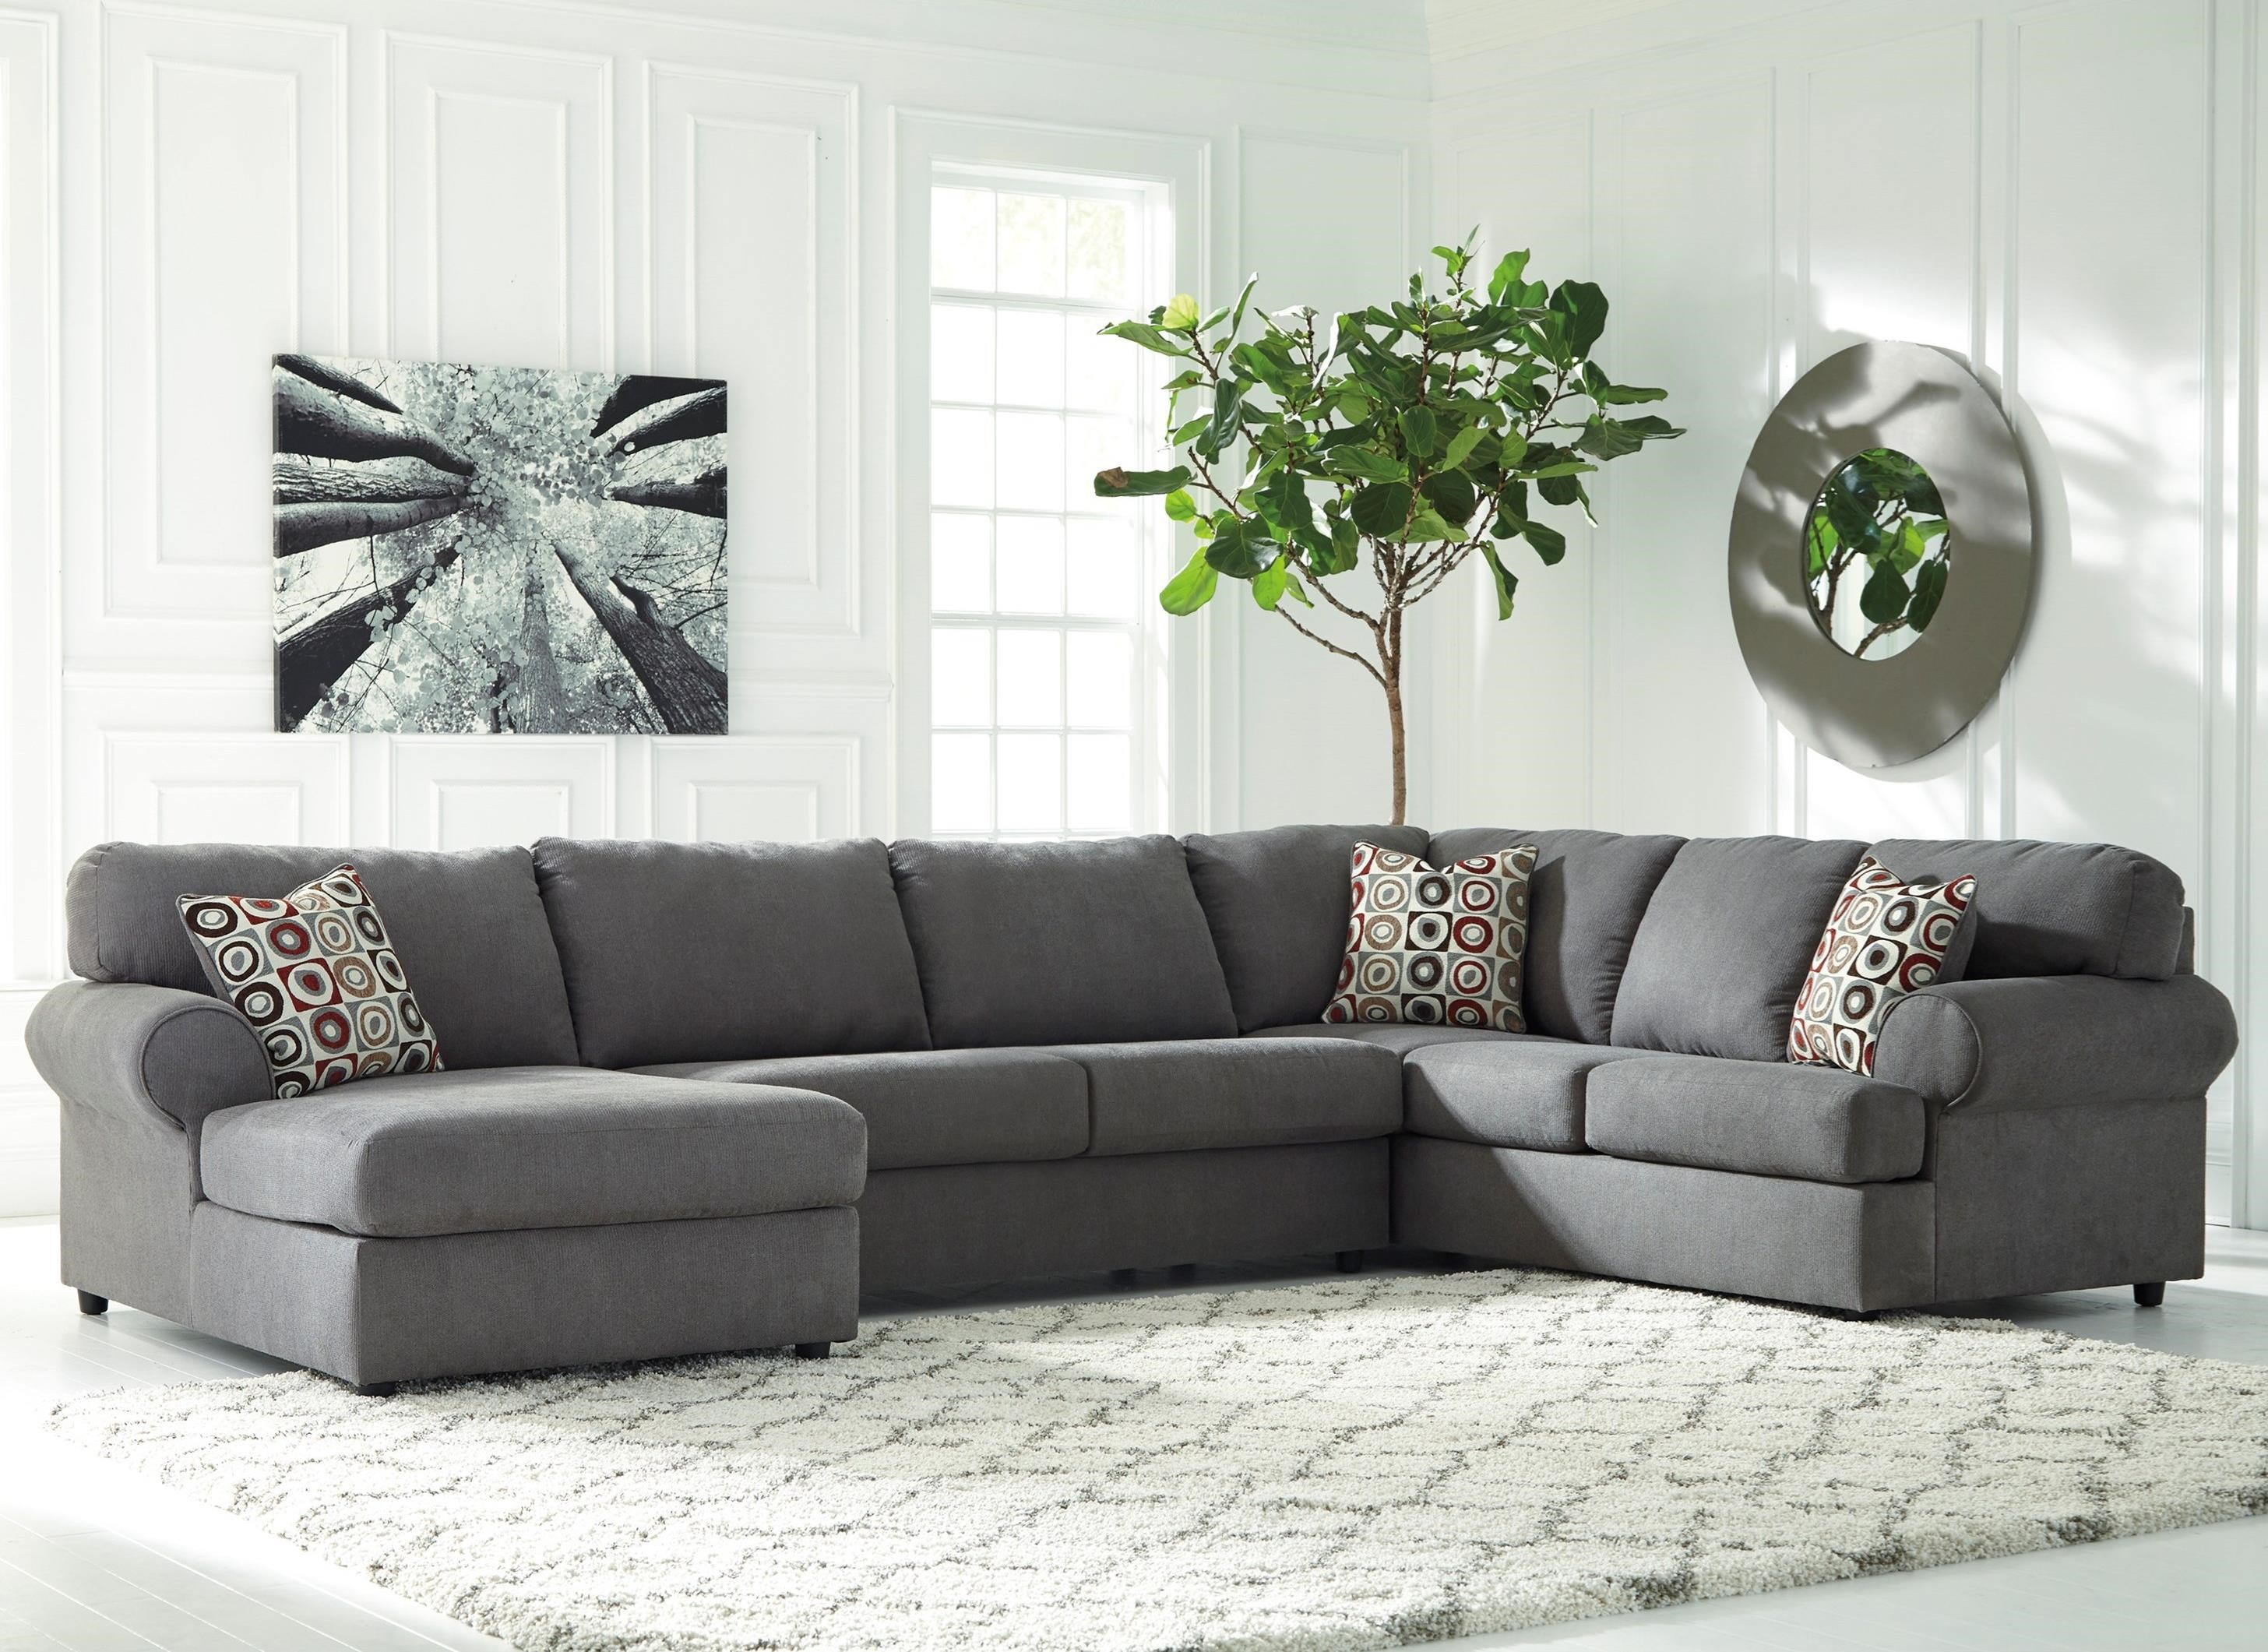 Signature design by ashley jayceon 3 piece sectional with for Ashley furniture chaise couch